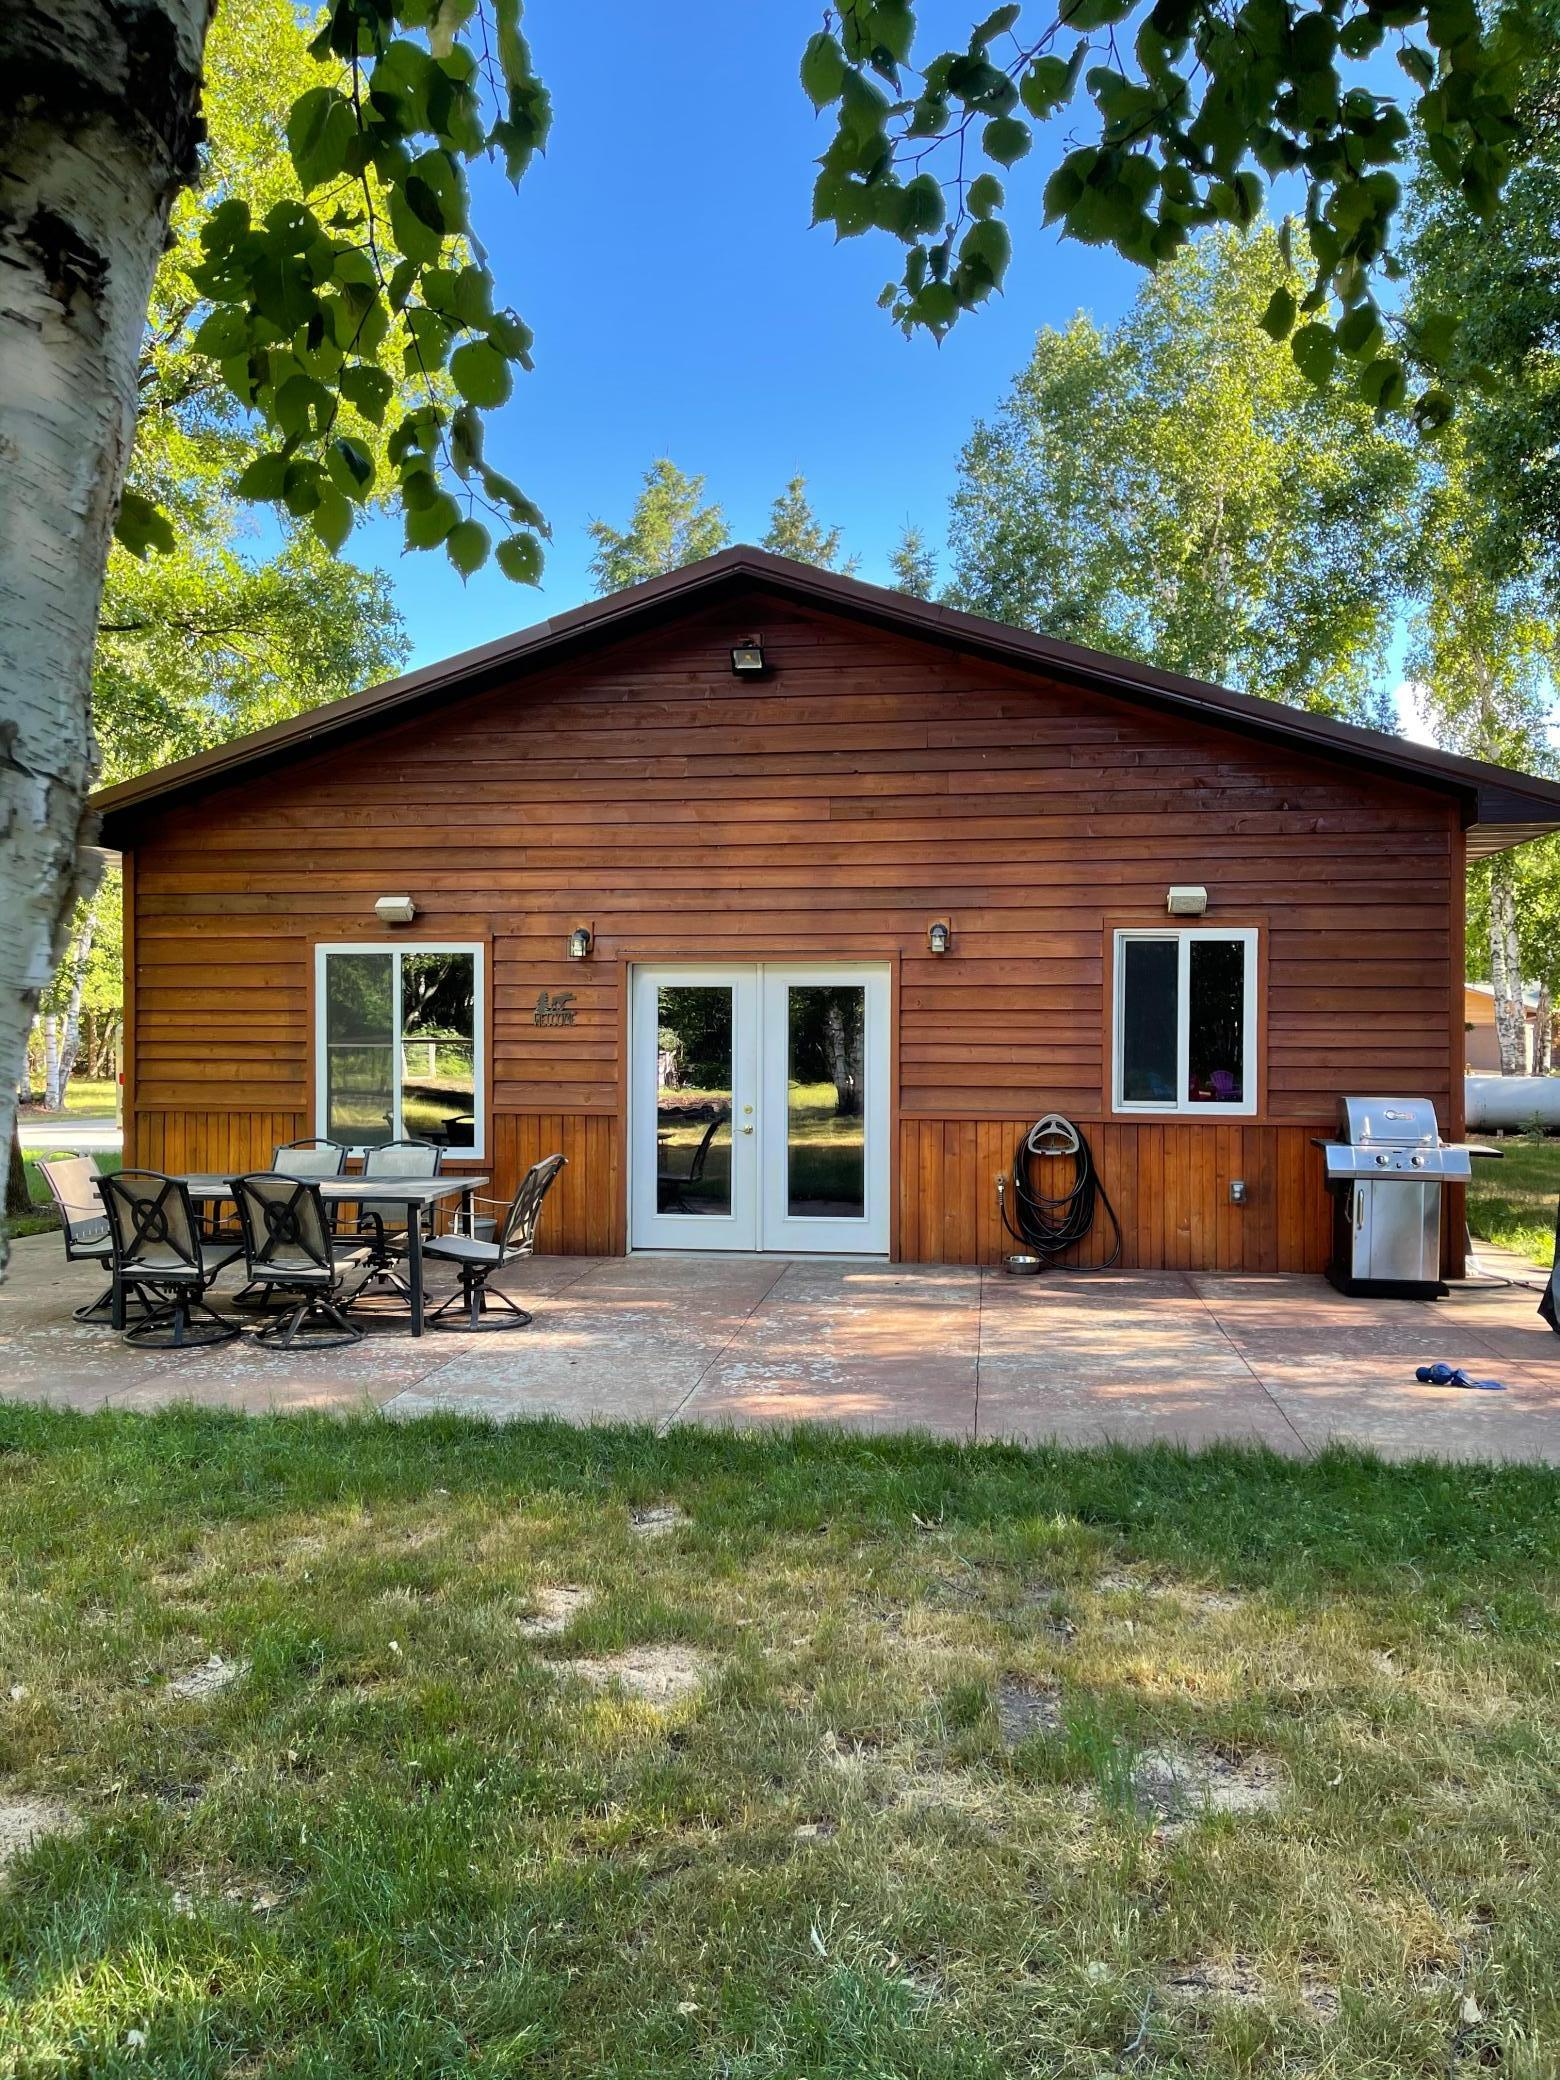 Take a look at this 2 bedroom country home on 2.8 acres in great location surrounded by lakes. Stamped concrete heated floors, custom woodwork, open floor plan, wet bar, insulated and heated shop/garage, bonfire pit, large fenced garden and storage shed. Sellers had horse in horse stall with electric fence running in the back of property, water hook ups in a few locations in the yard.